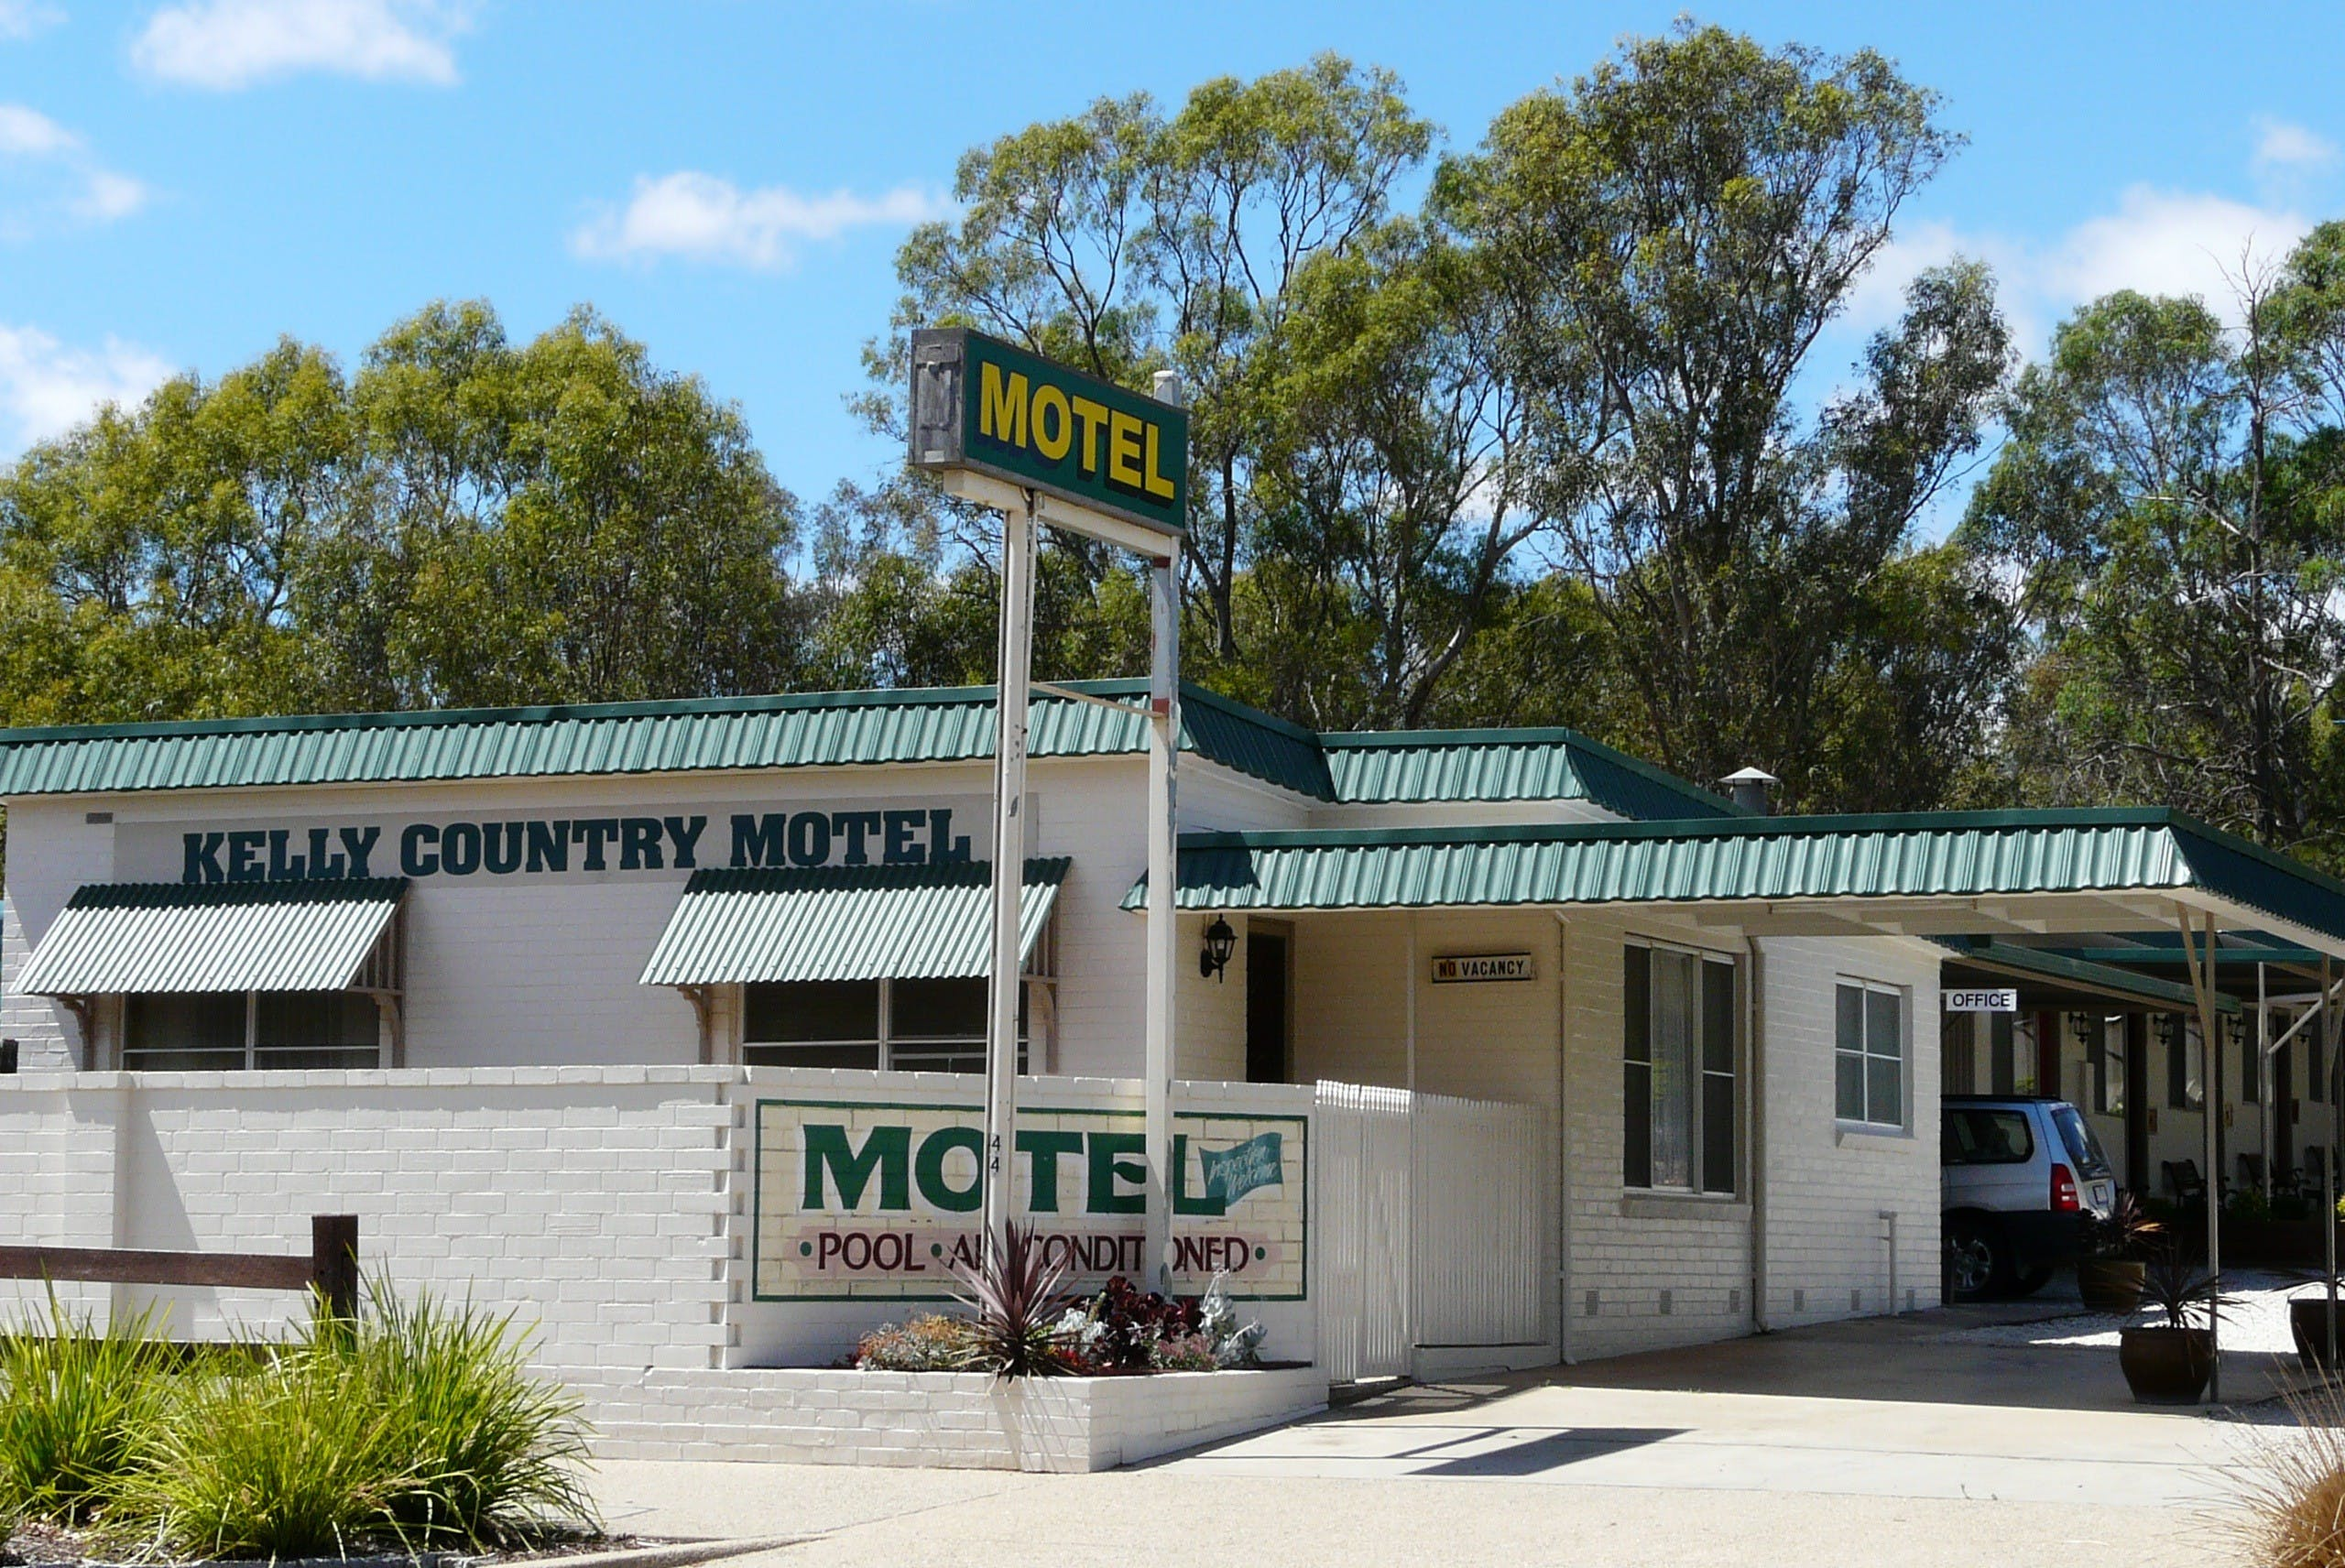 Glenrowan Kelly Country Motel - South Australia Travel